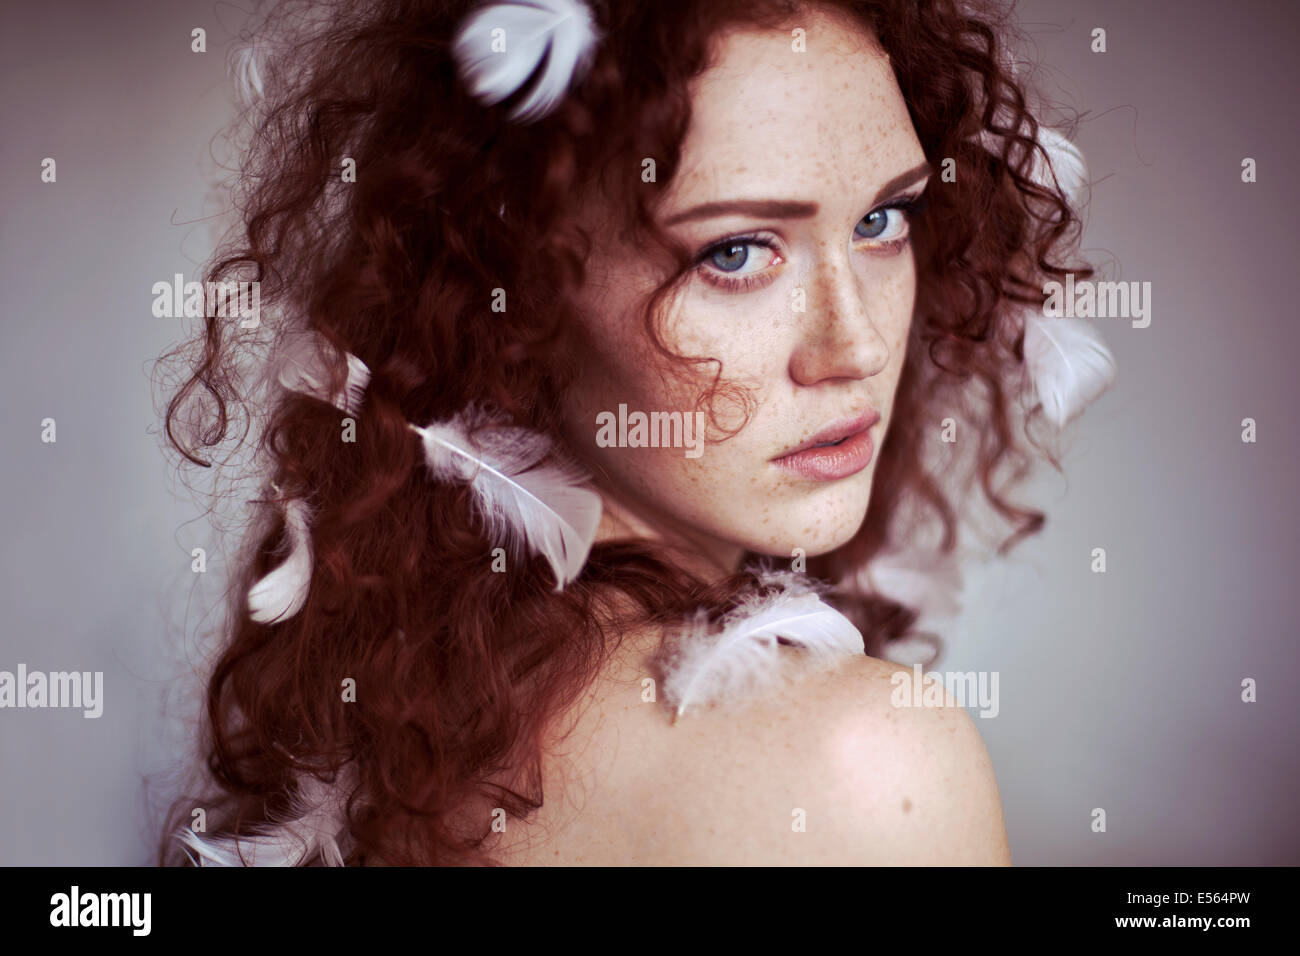 Young woman with feathers in her hair - Stock Image